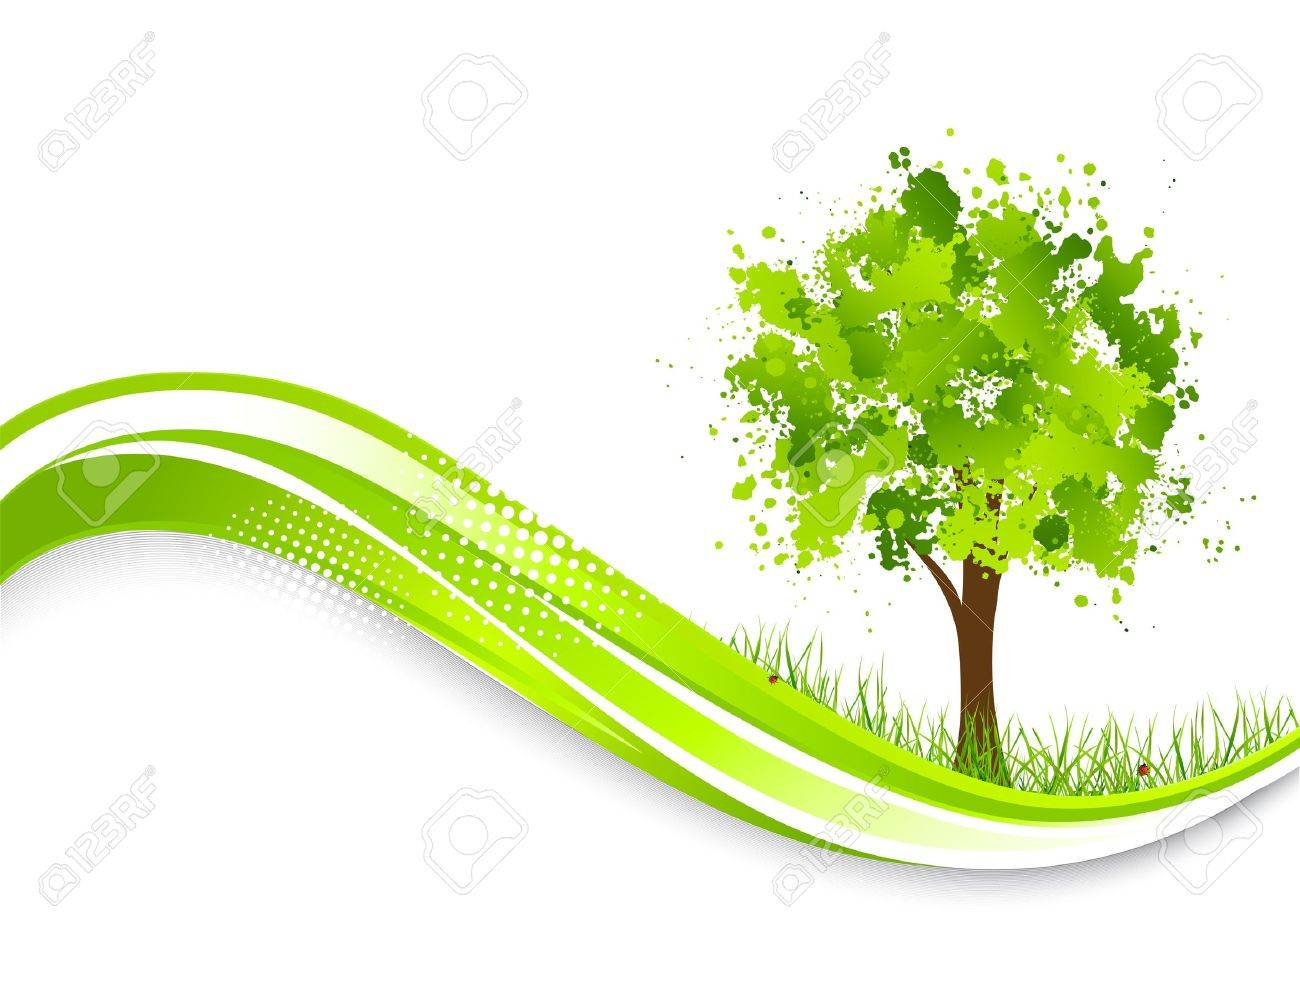 Green Abstract Background Images Background With Abstract Green